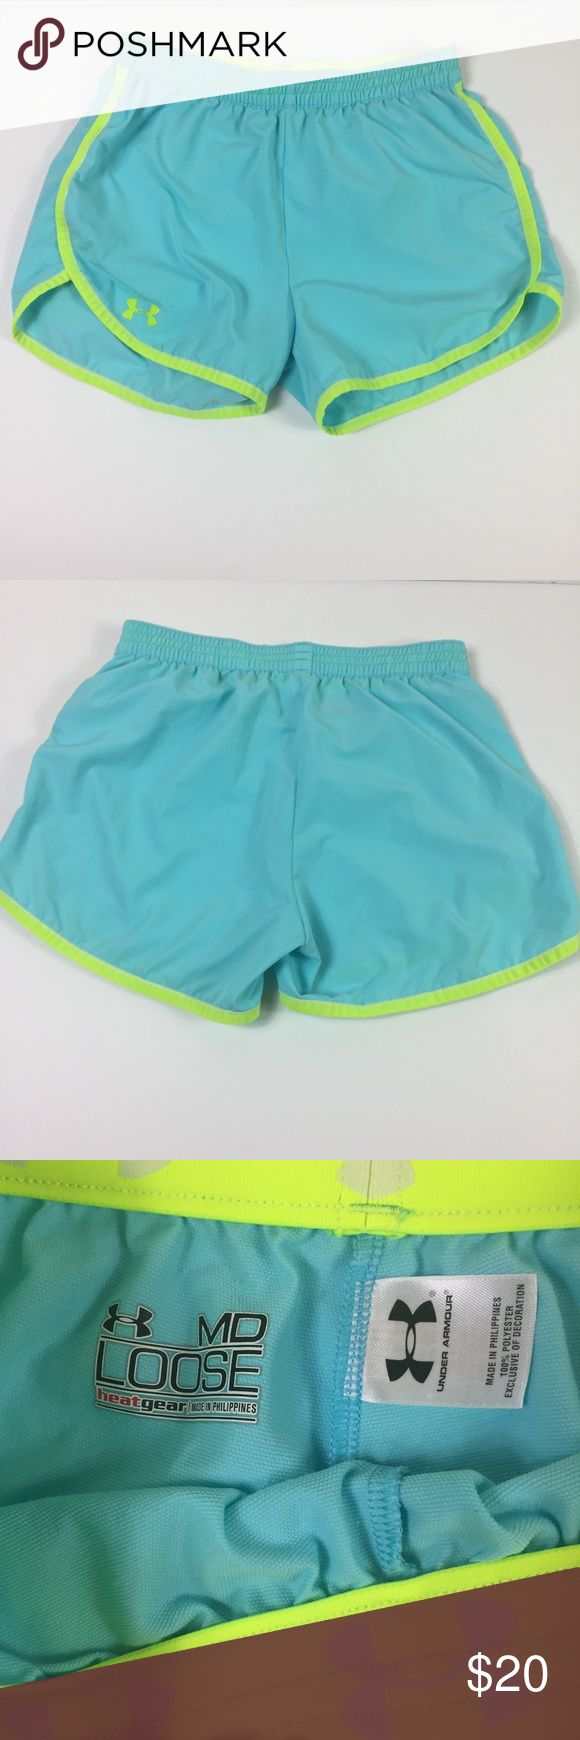 [Under Armour] shorts Real/lime Neon green shorts No Trades! Offers Welcome Under Armour Shorts